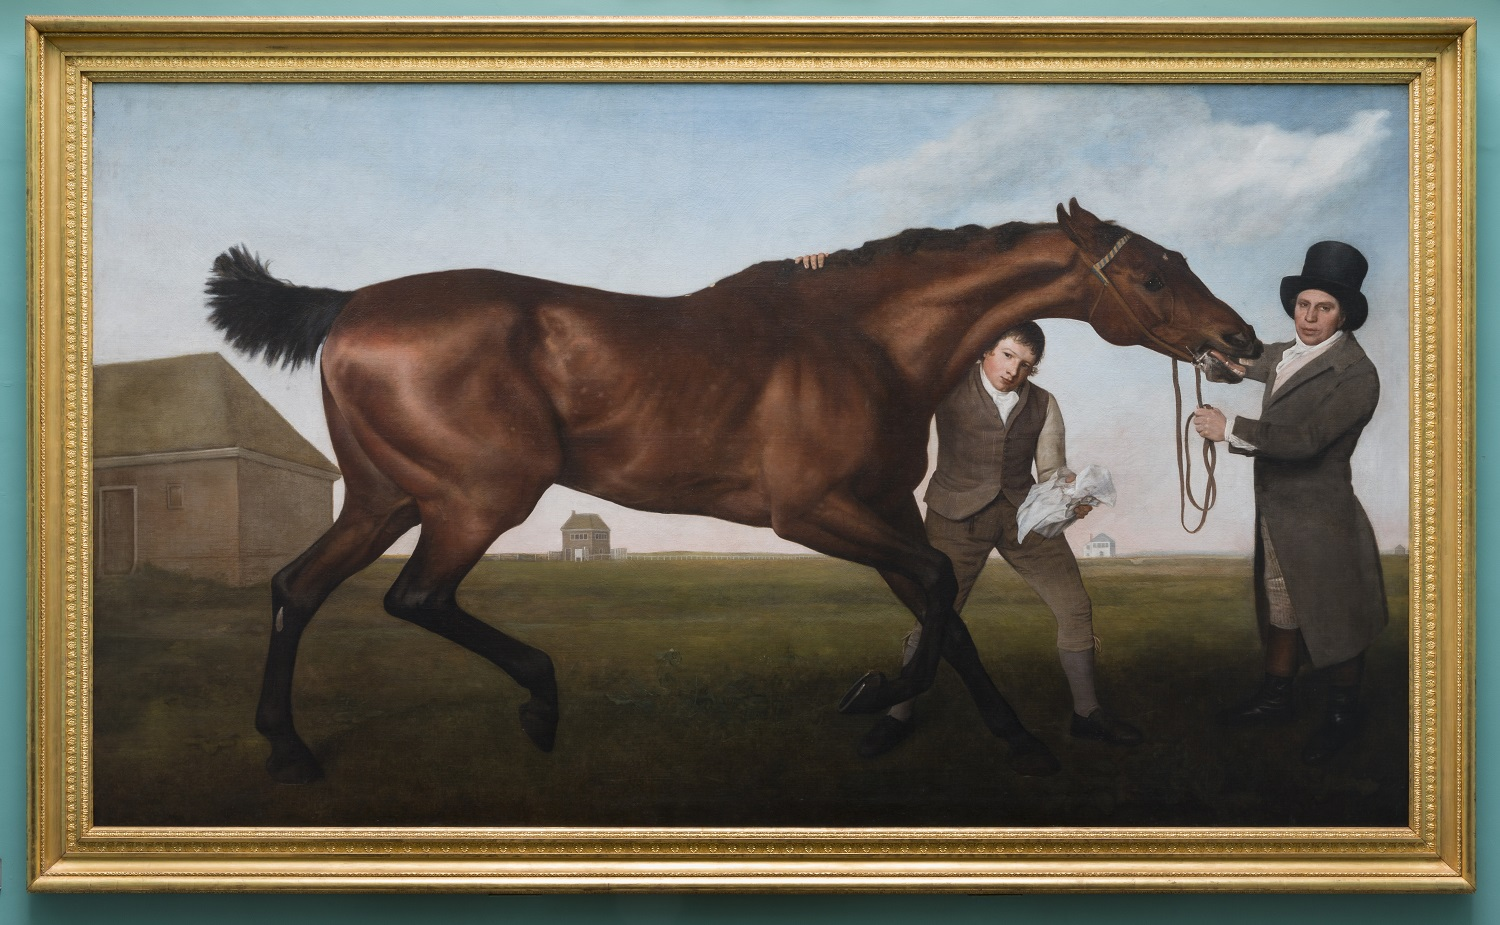 Prize Stallions and Beasts of Burden: The Horse and the English Country House - Presented by Dr. Oliver Cox